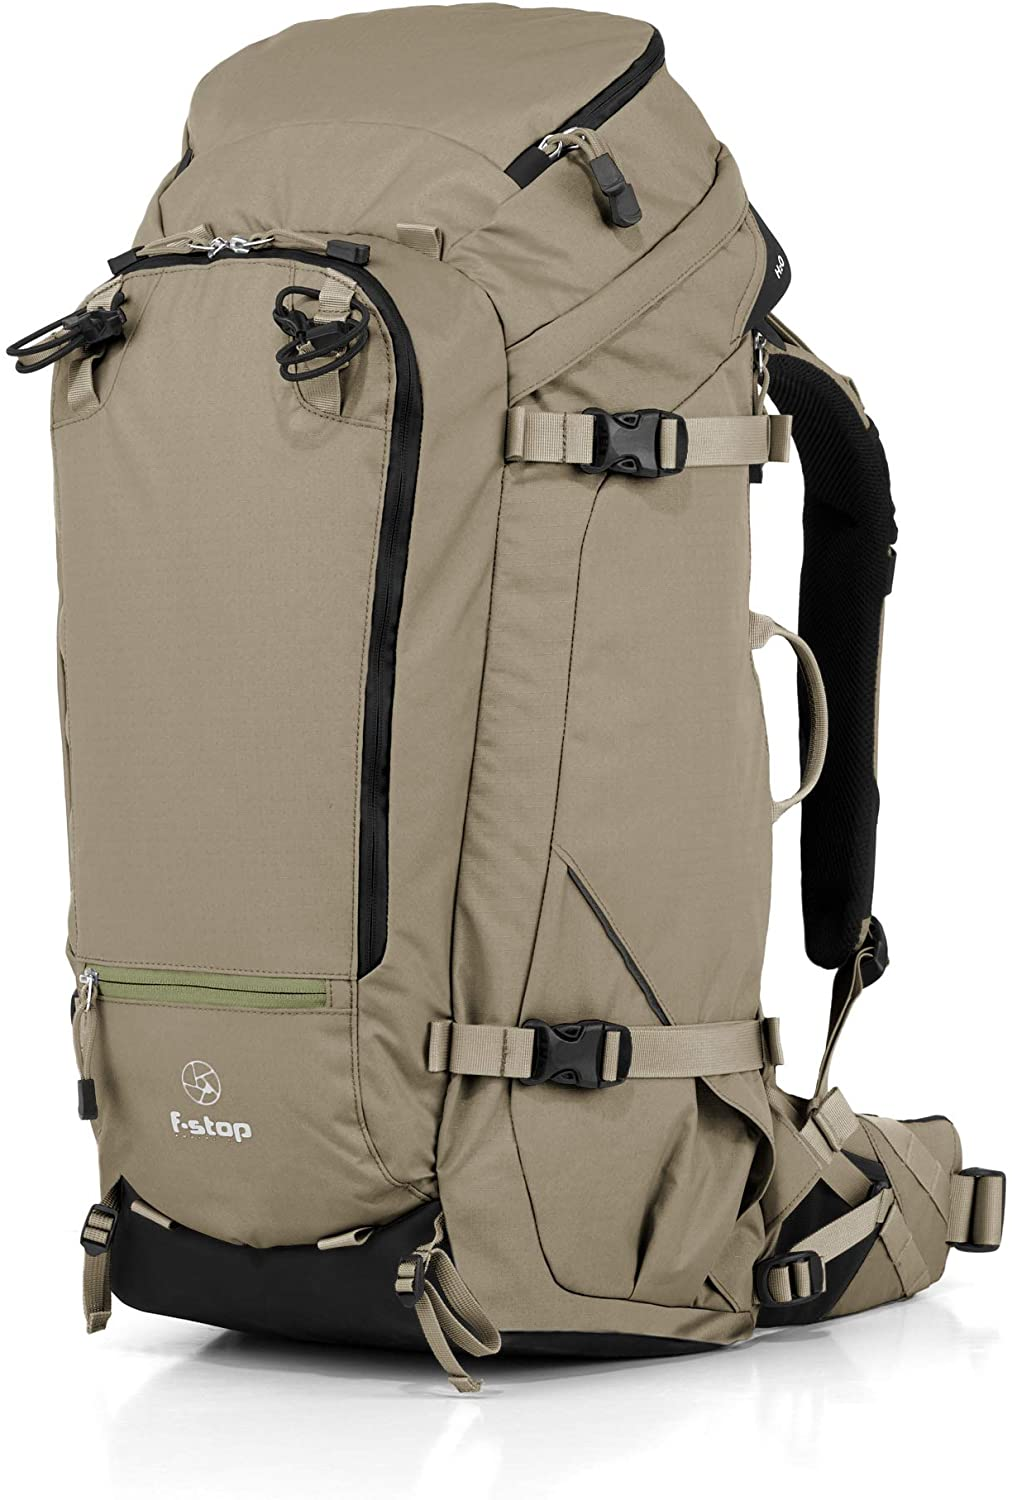 Backpack Christmas gifts for landscape photographers